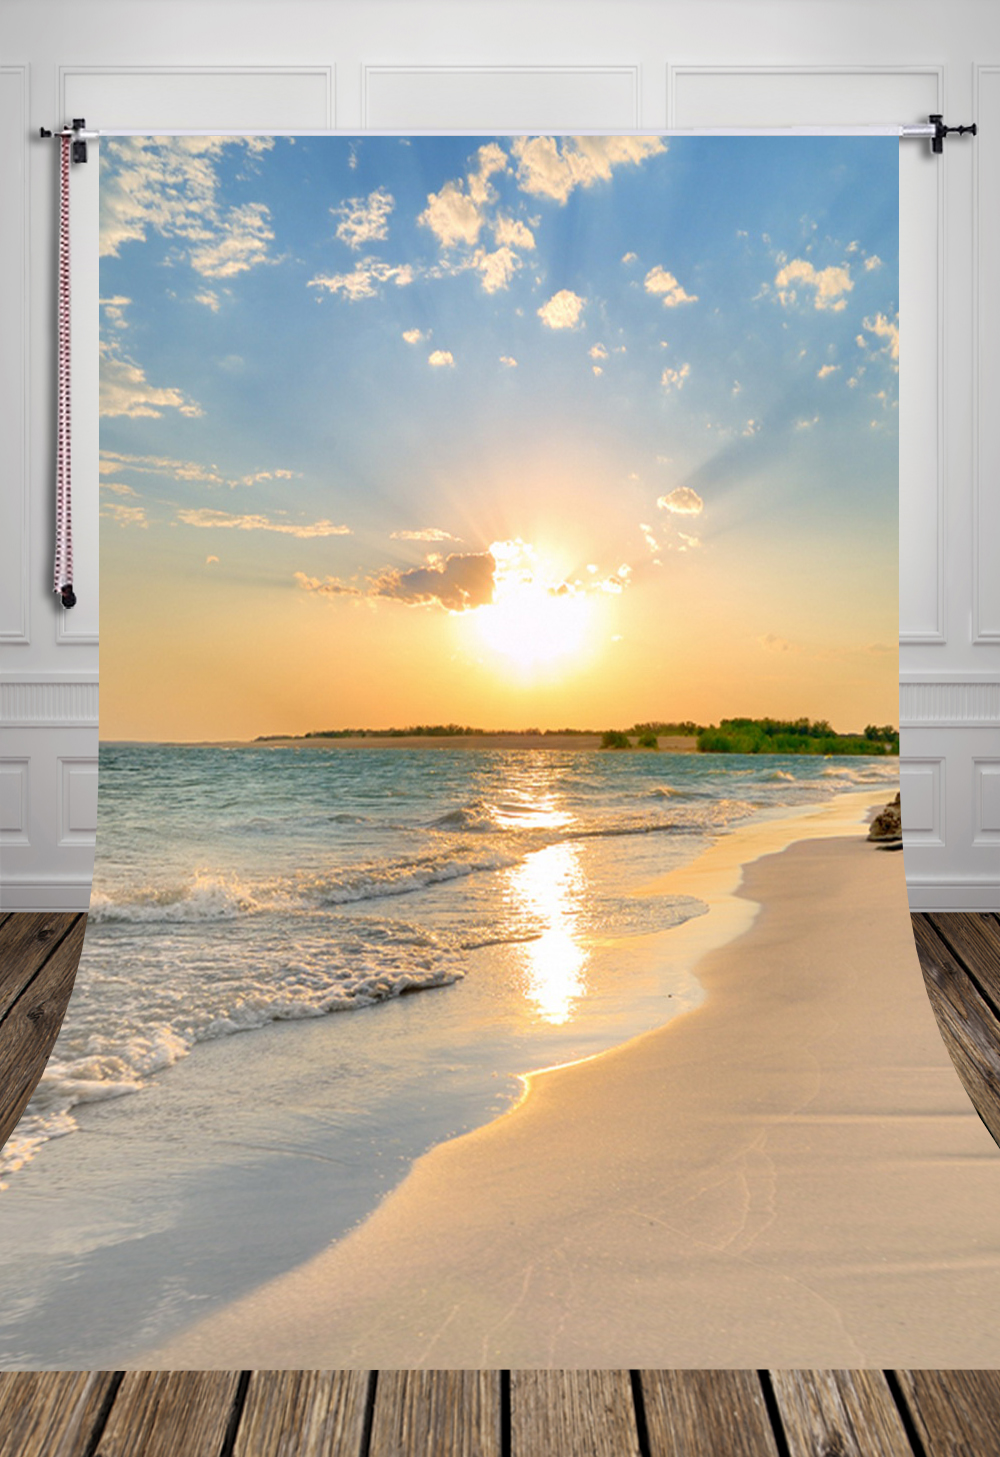 Photography Background Wallpapers: Beach Photography Backgrounds Studio Photography Backdrop